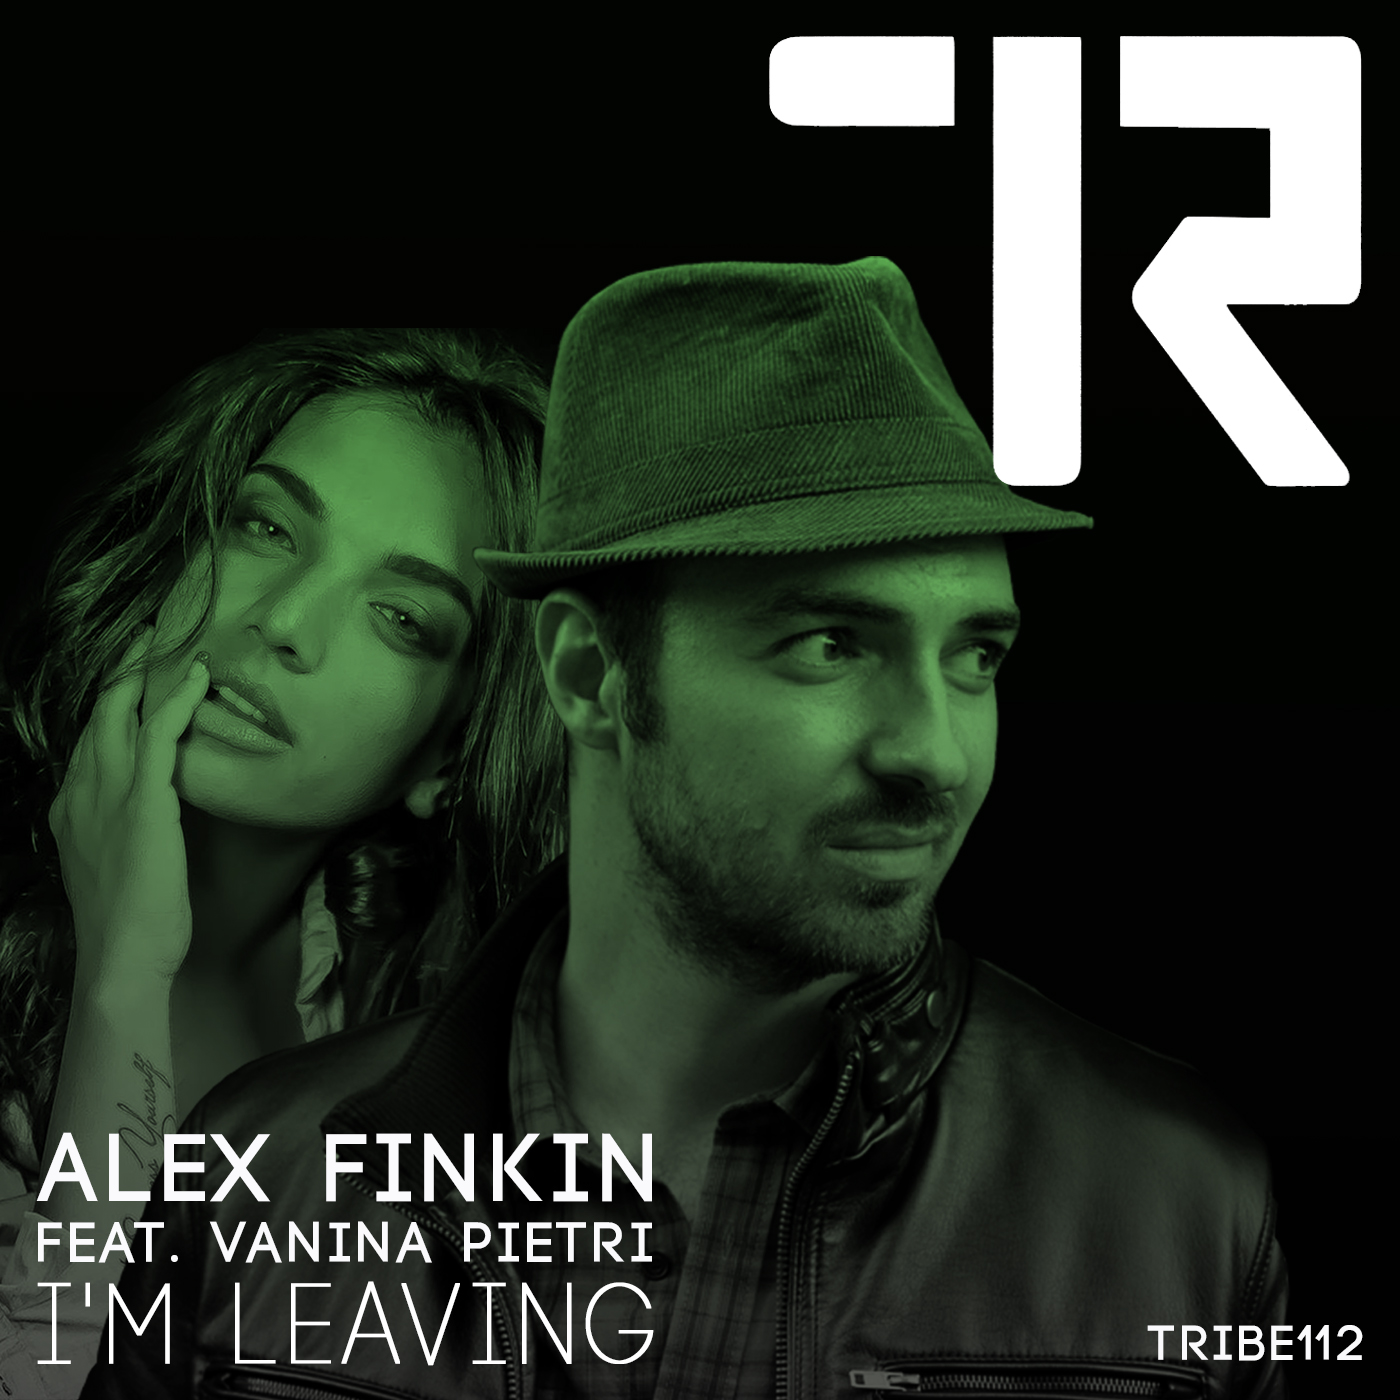 I'M LEAVING ALEX FINKIN  VANINA PIETRI